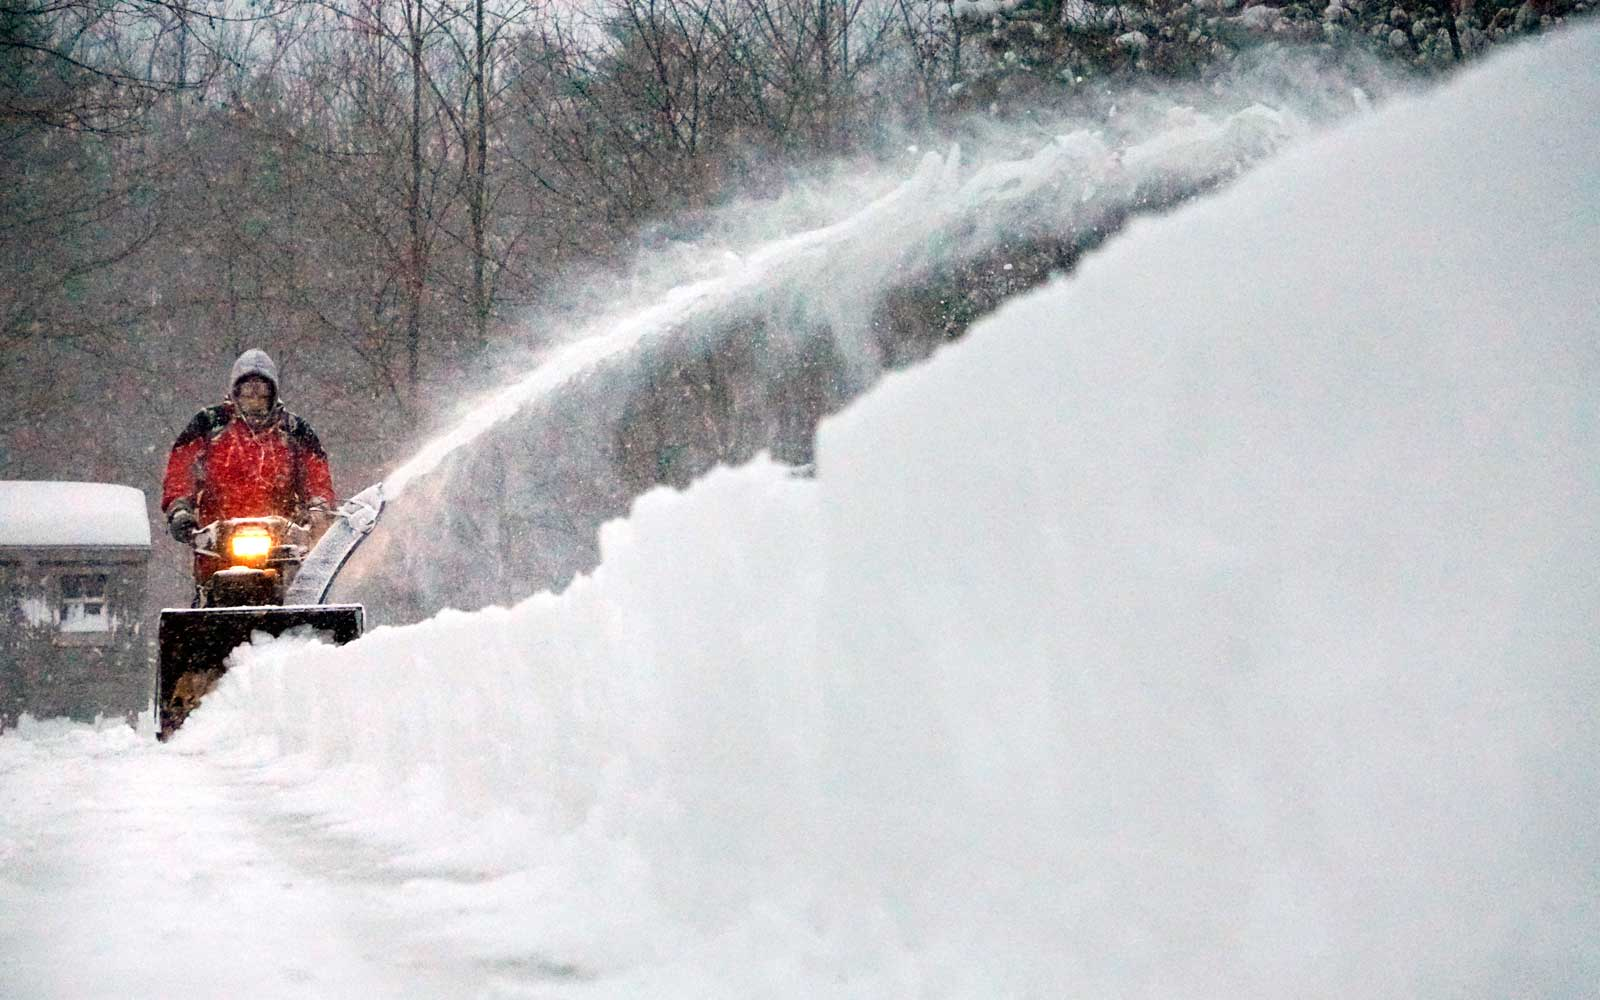 Nor'easter snow storm blows through Maine